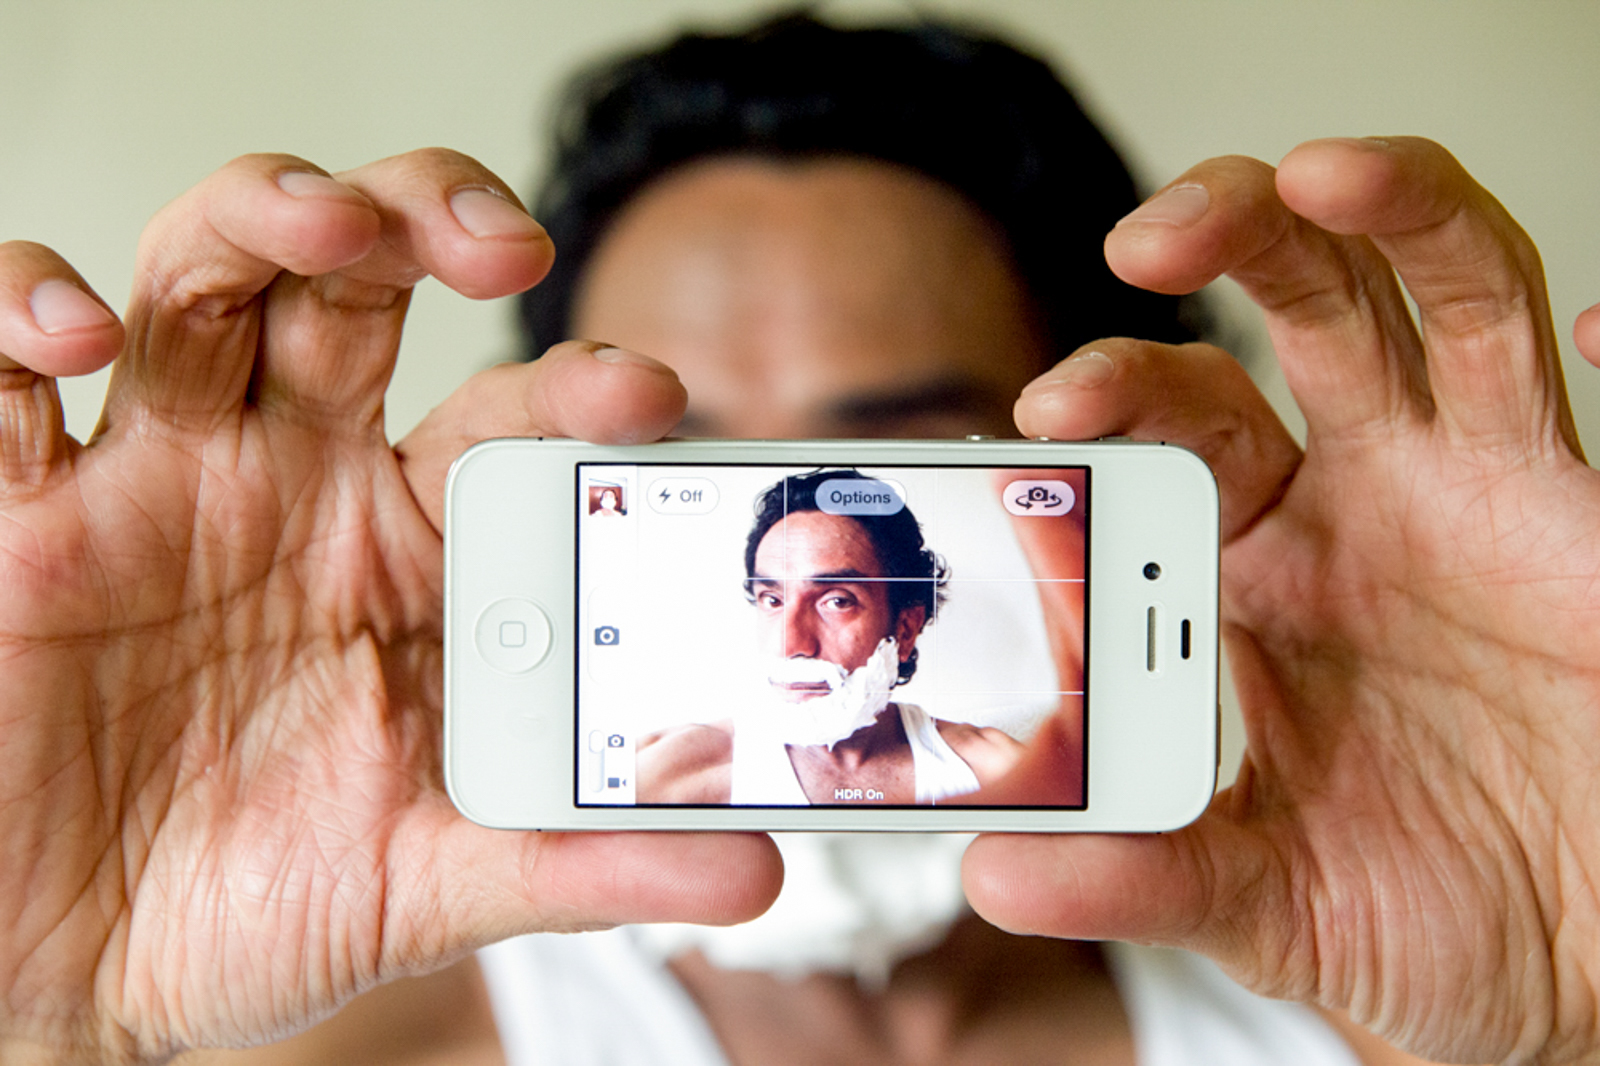 Portrait of man through a phone screen, with shaving cream on his face